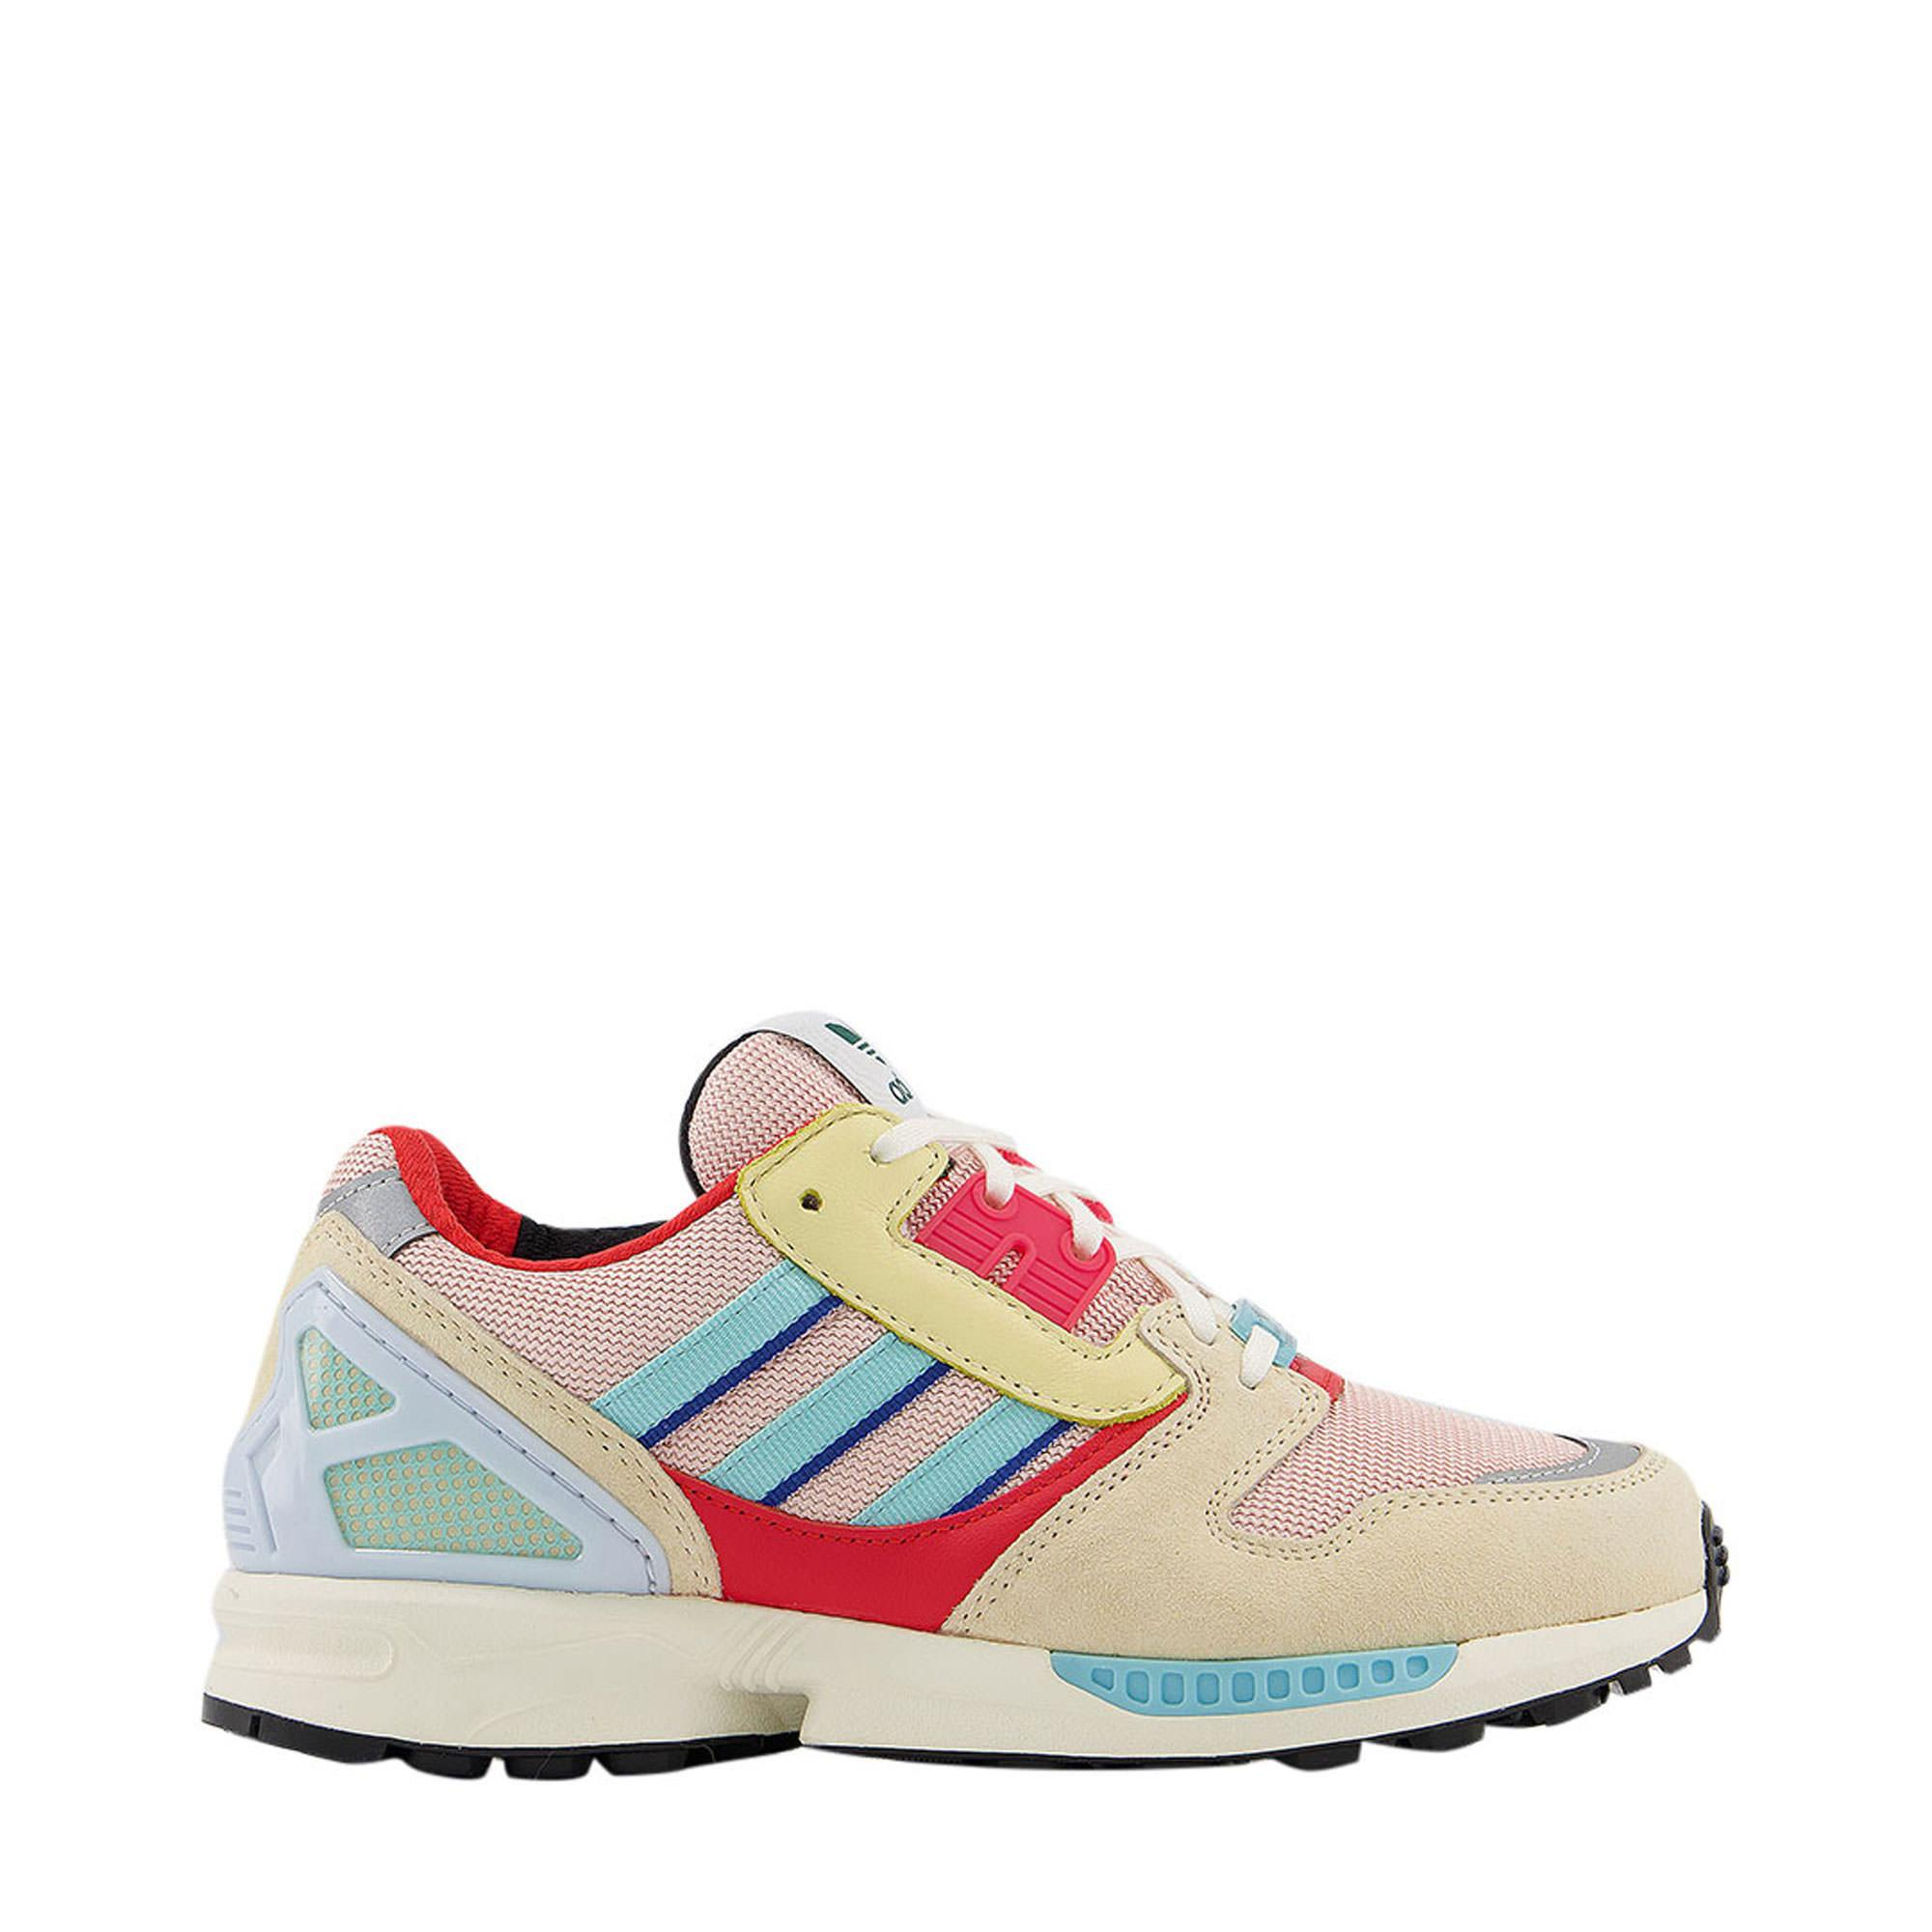 ZX 8000 Trainers